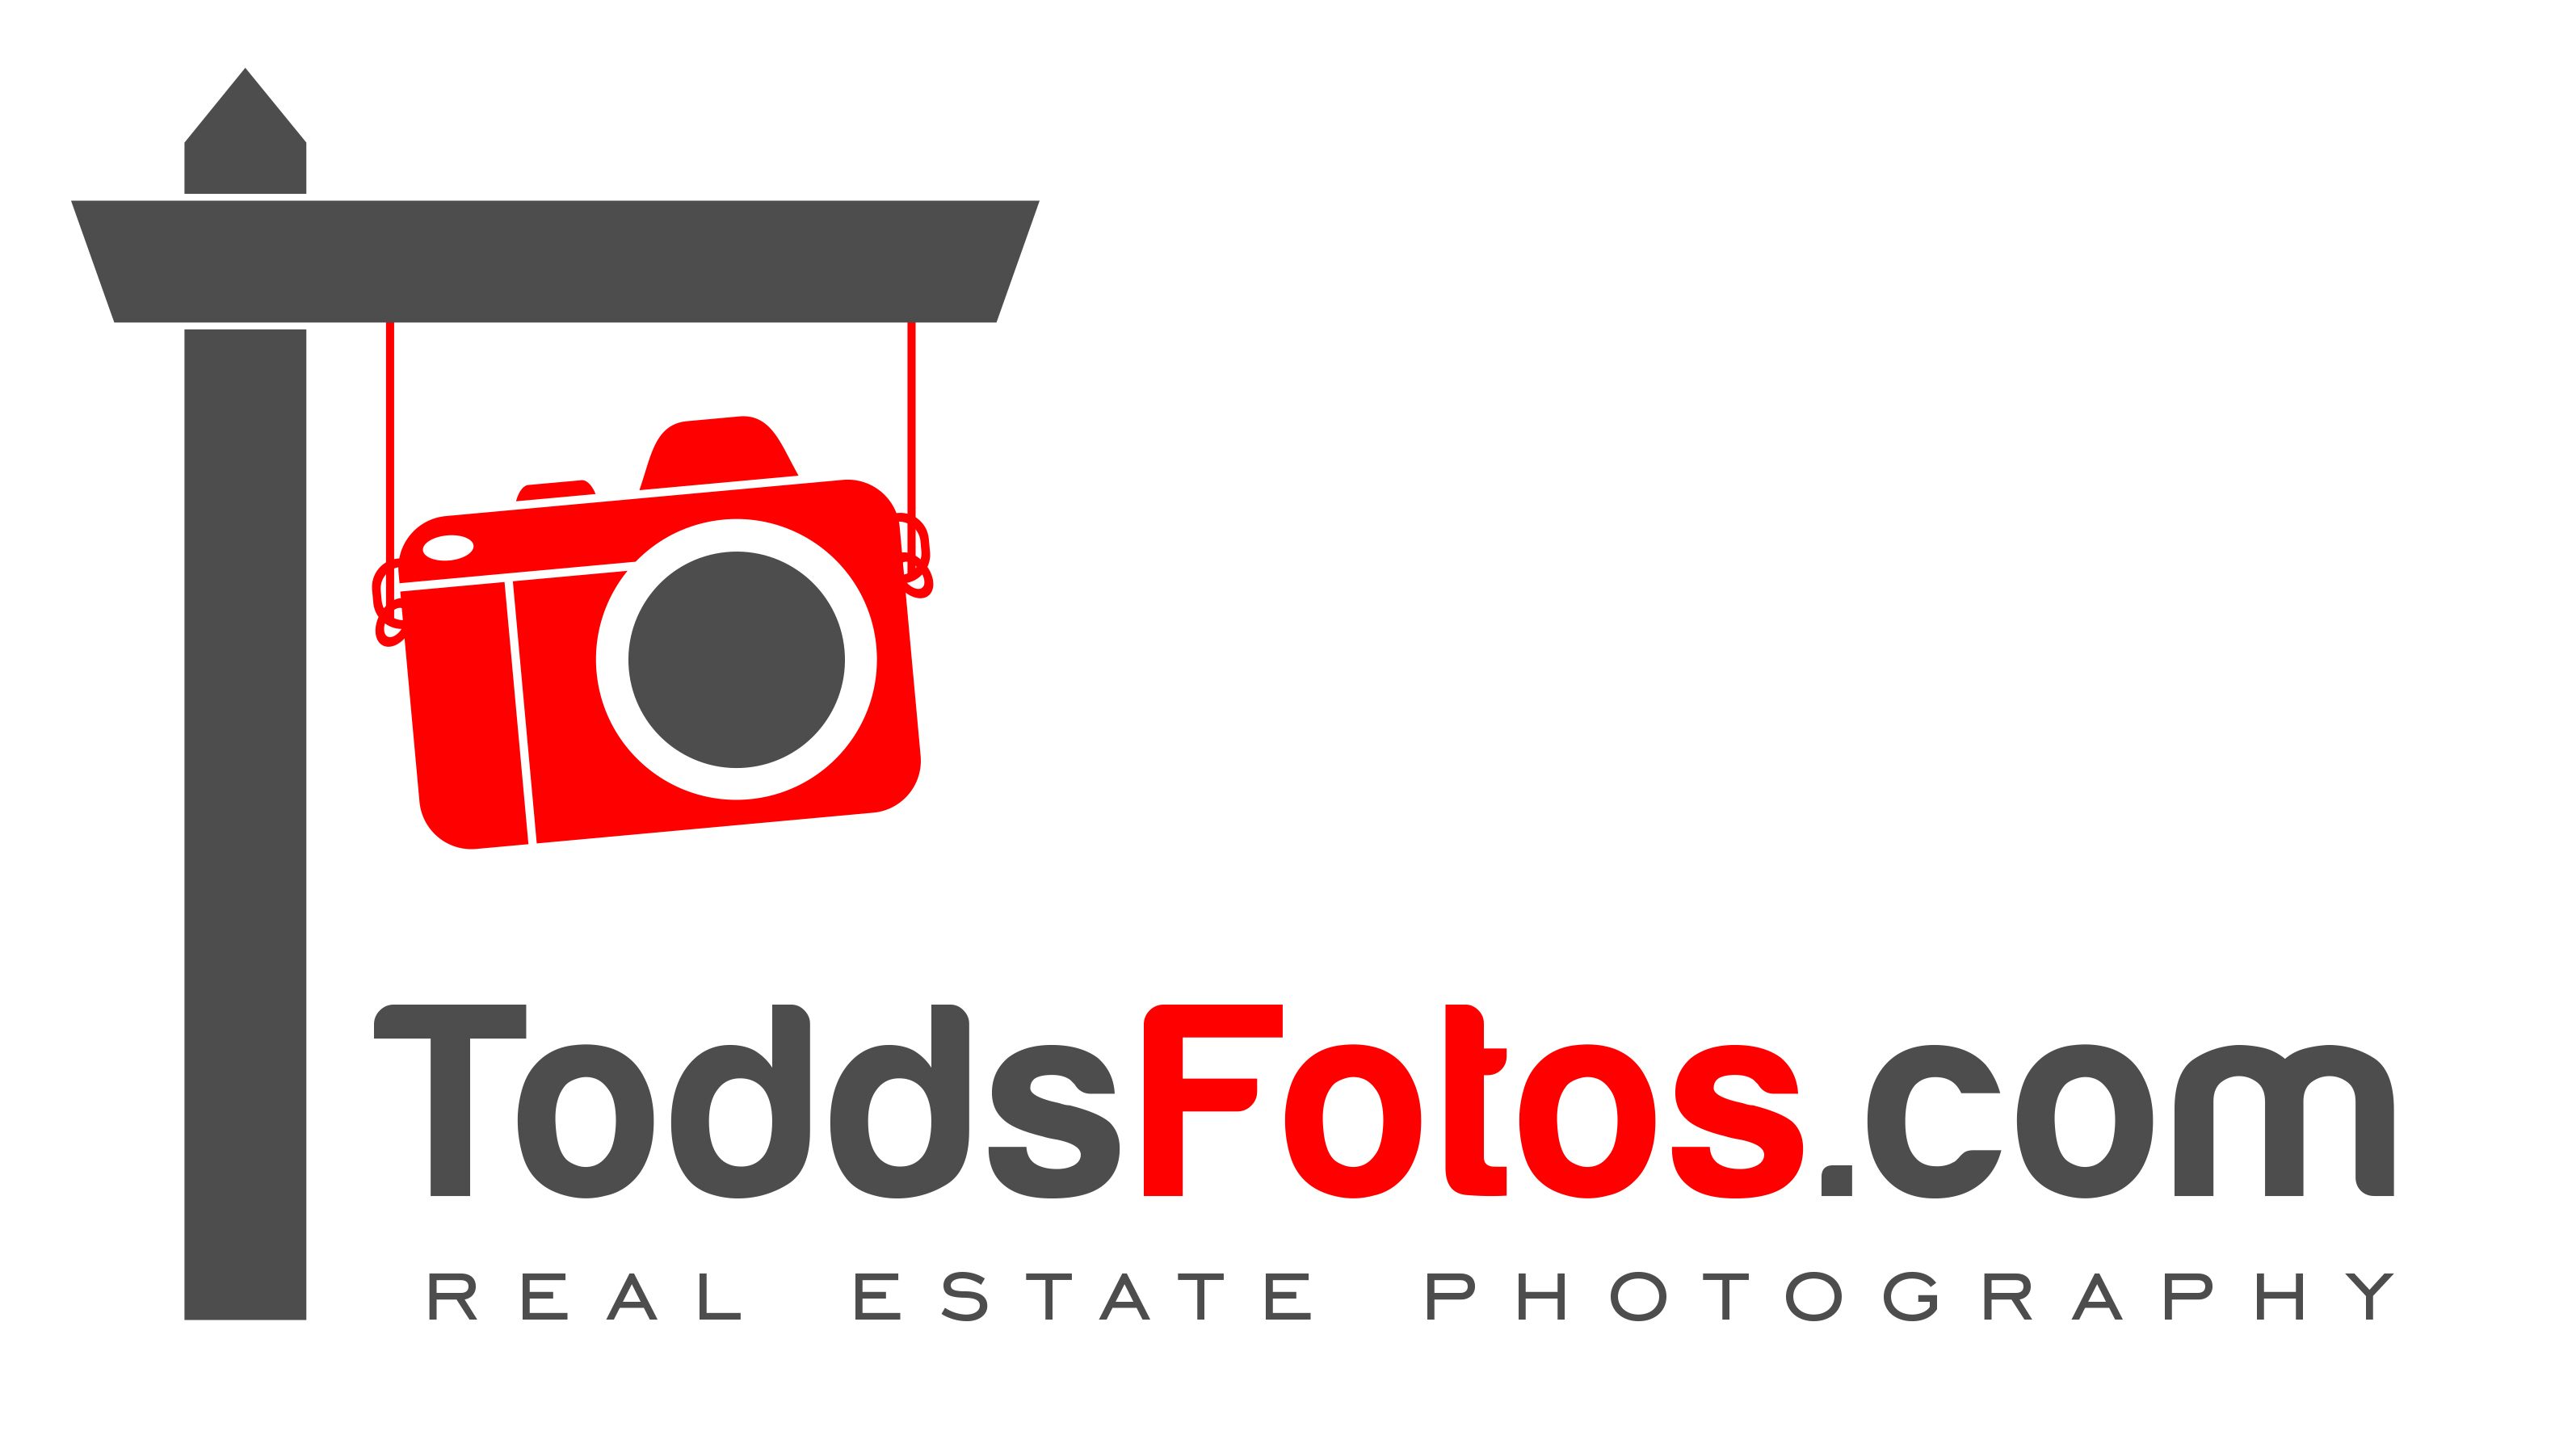 ToddsFotos.com